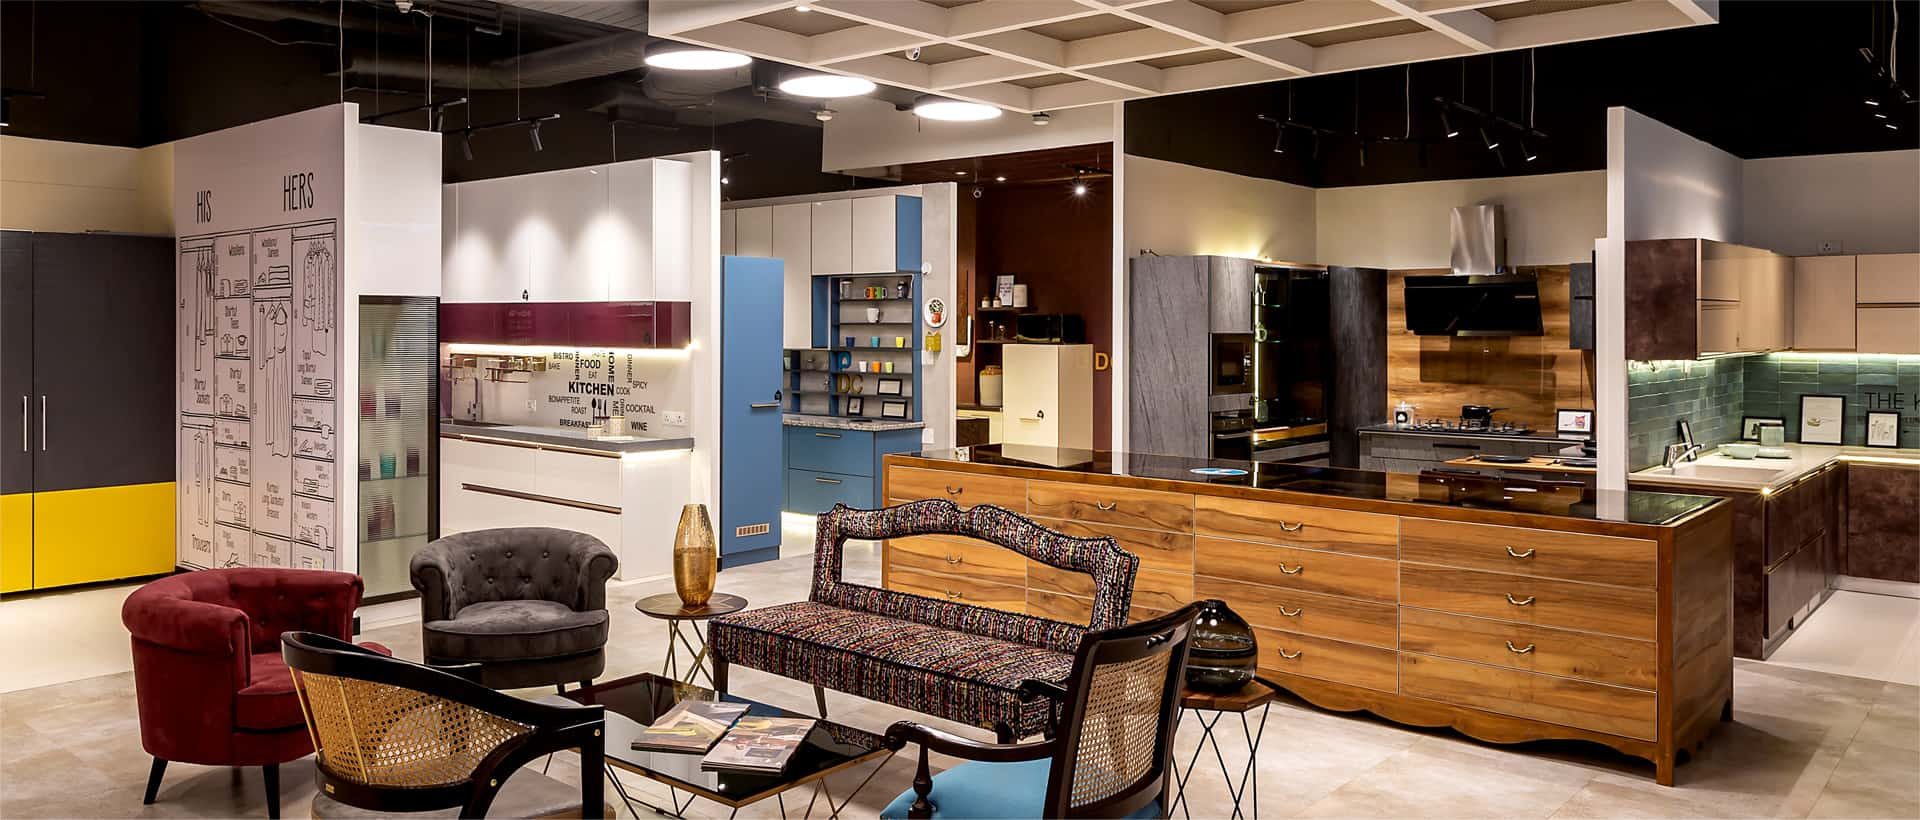 Get Design Cafe Home Interiors Franchisee by investing 1 Crore.